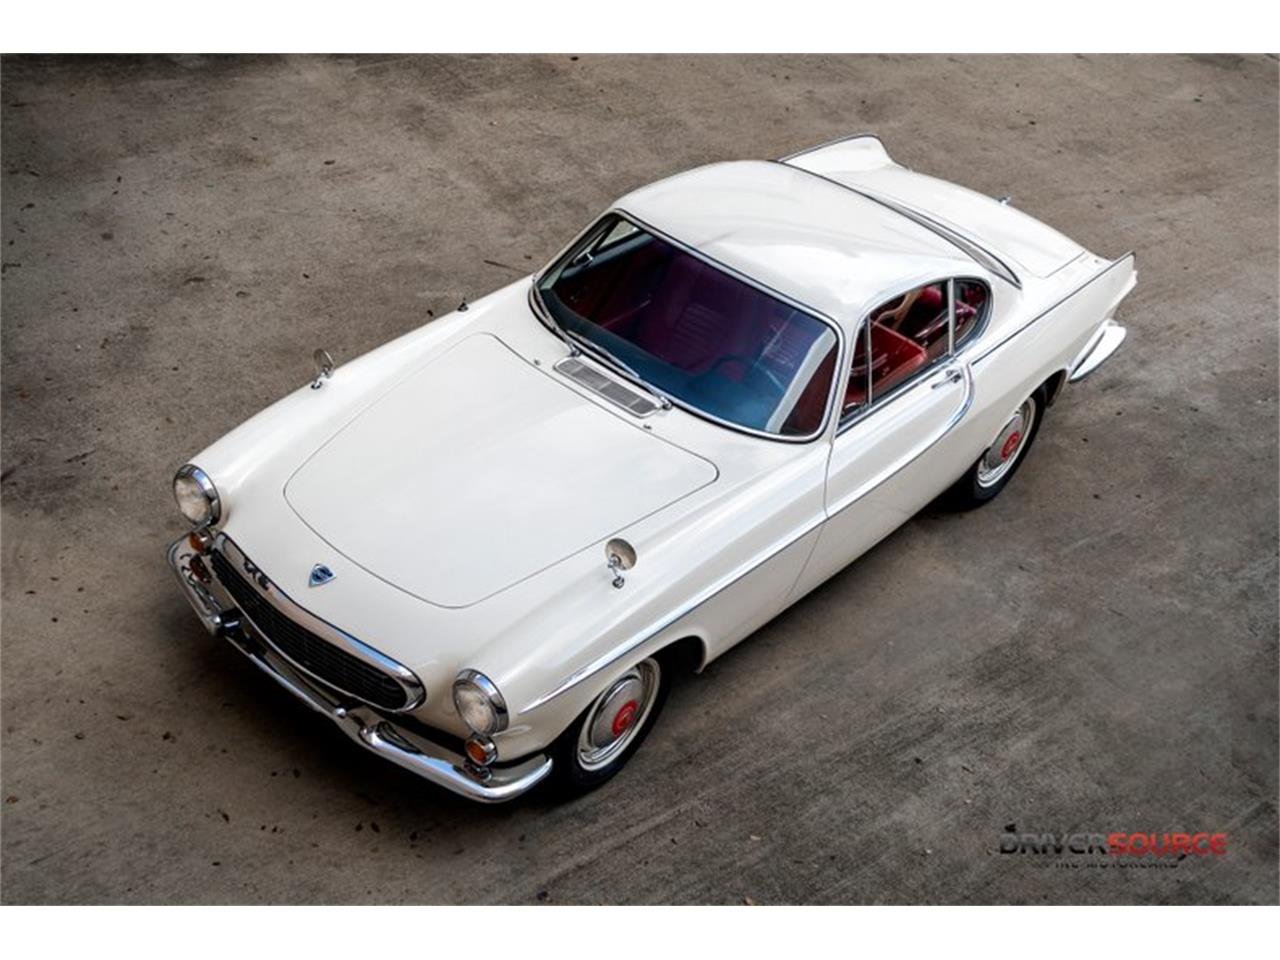 Large Picture of Classic '64 P1800E located in Texas - $49,250.00 Offered by Driversource - NNM3